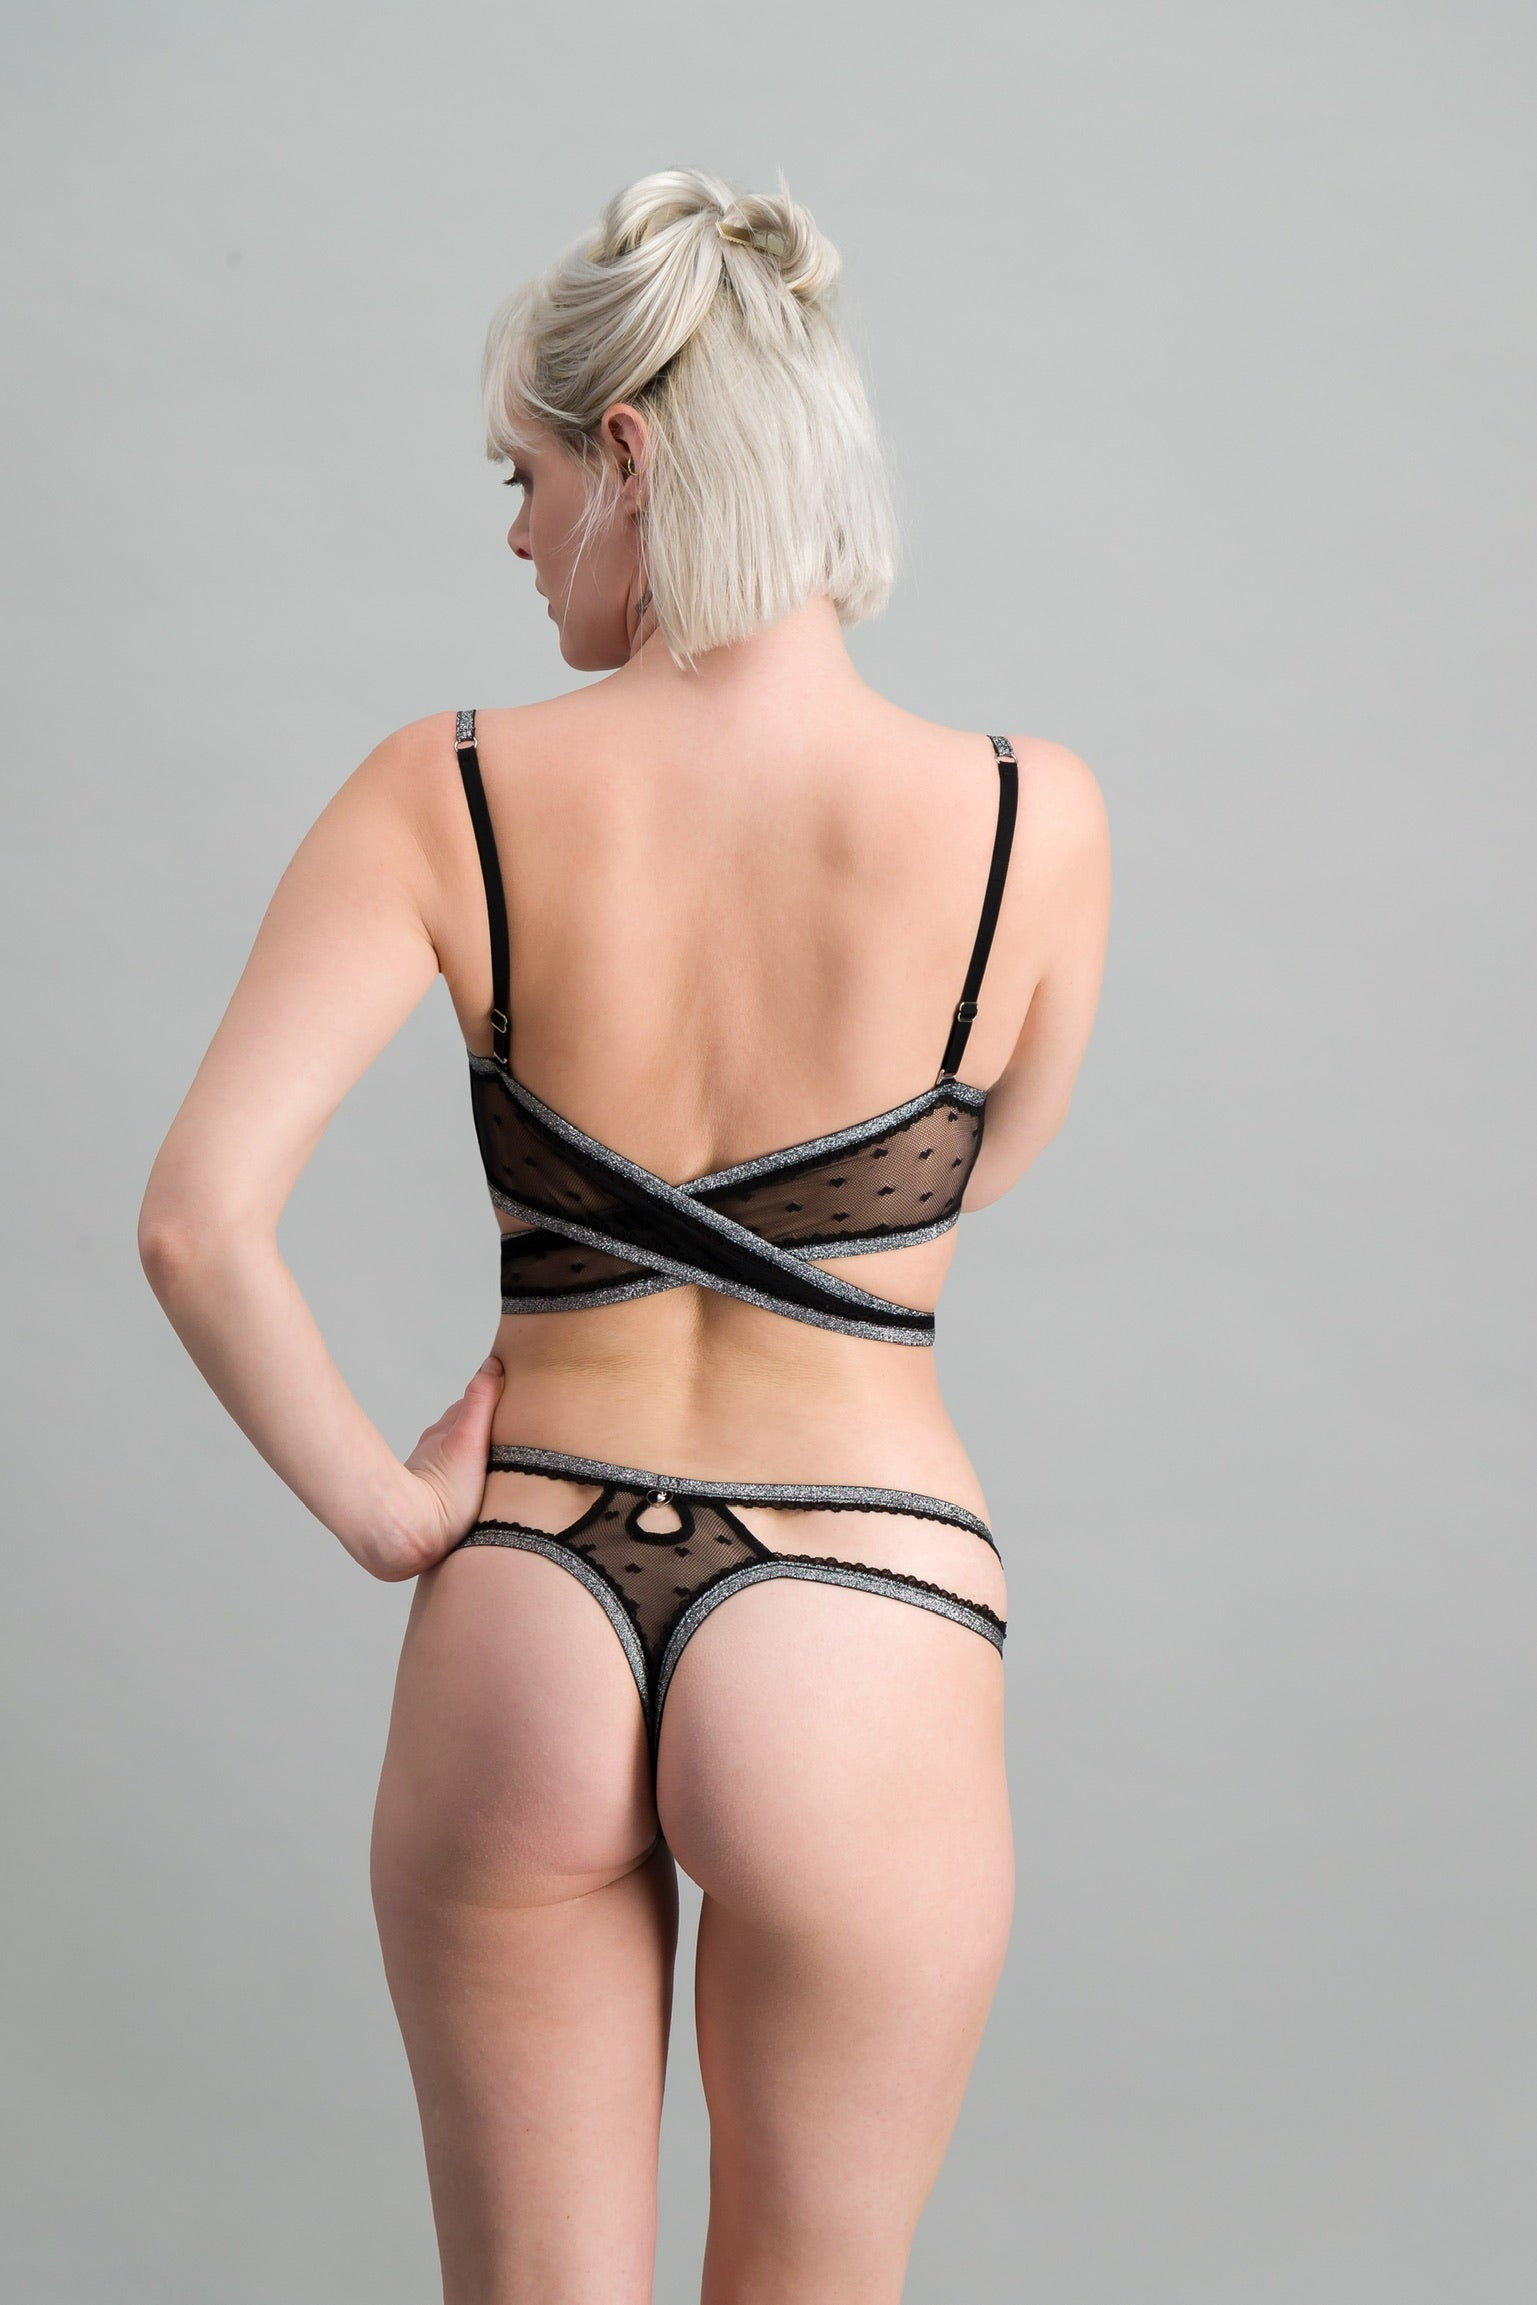 Tanga - Reine de coeur New collection